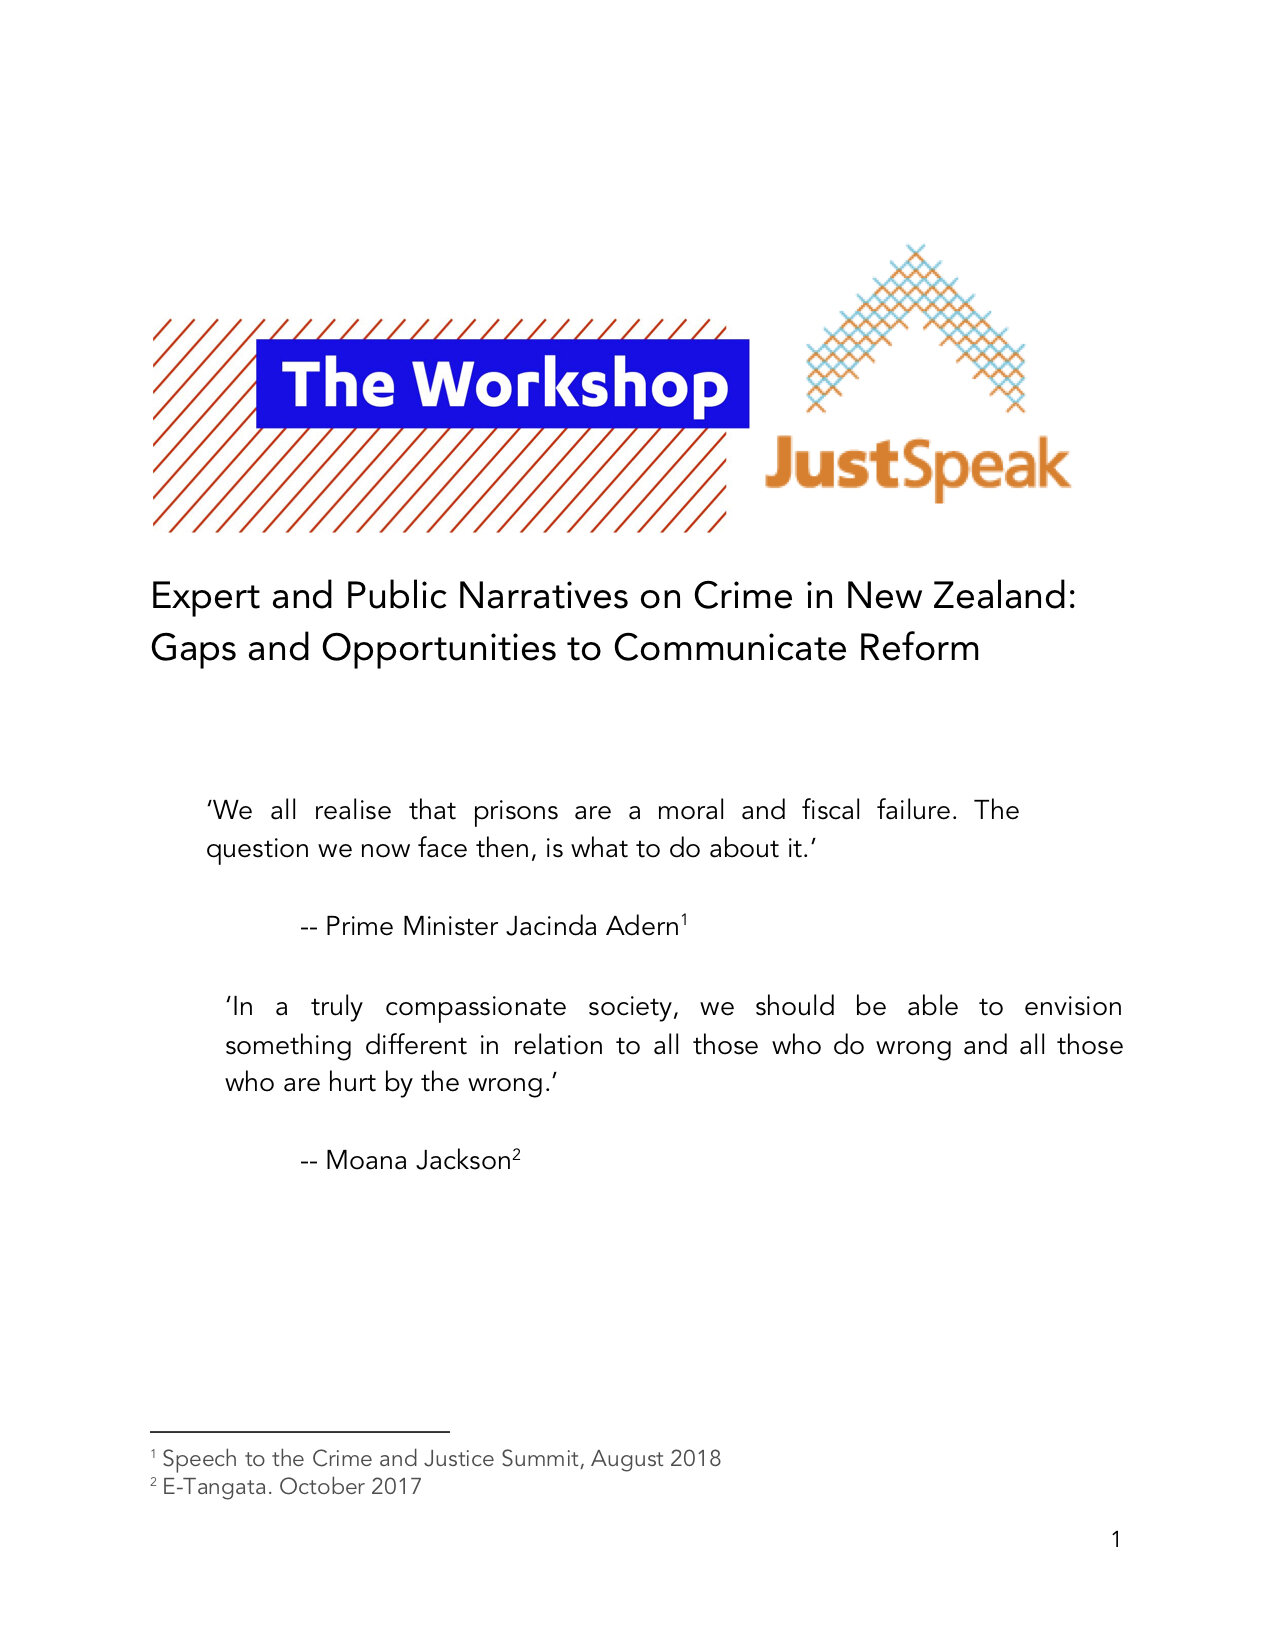 190709 Expert and Public Narratives on Crime in New Zealand cover.jpg